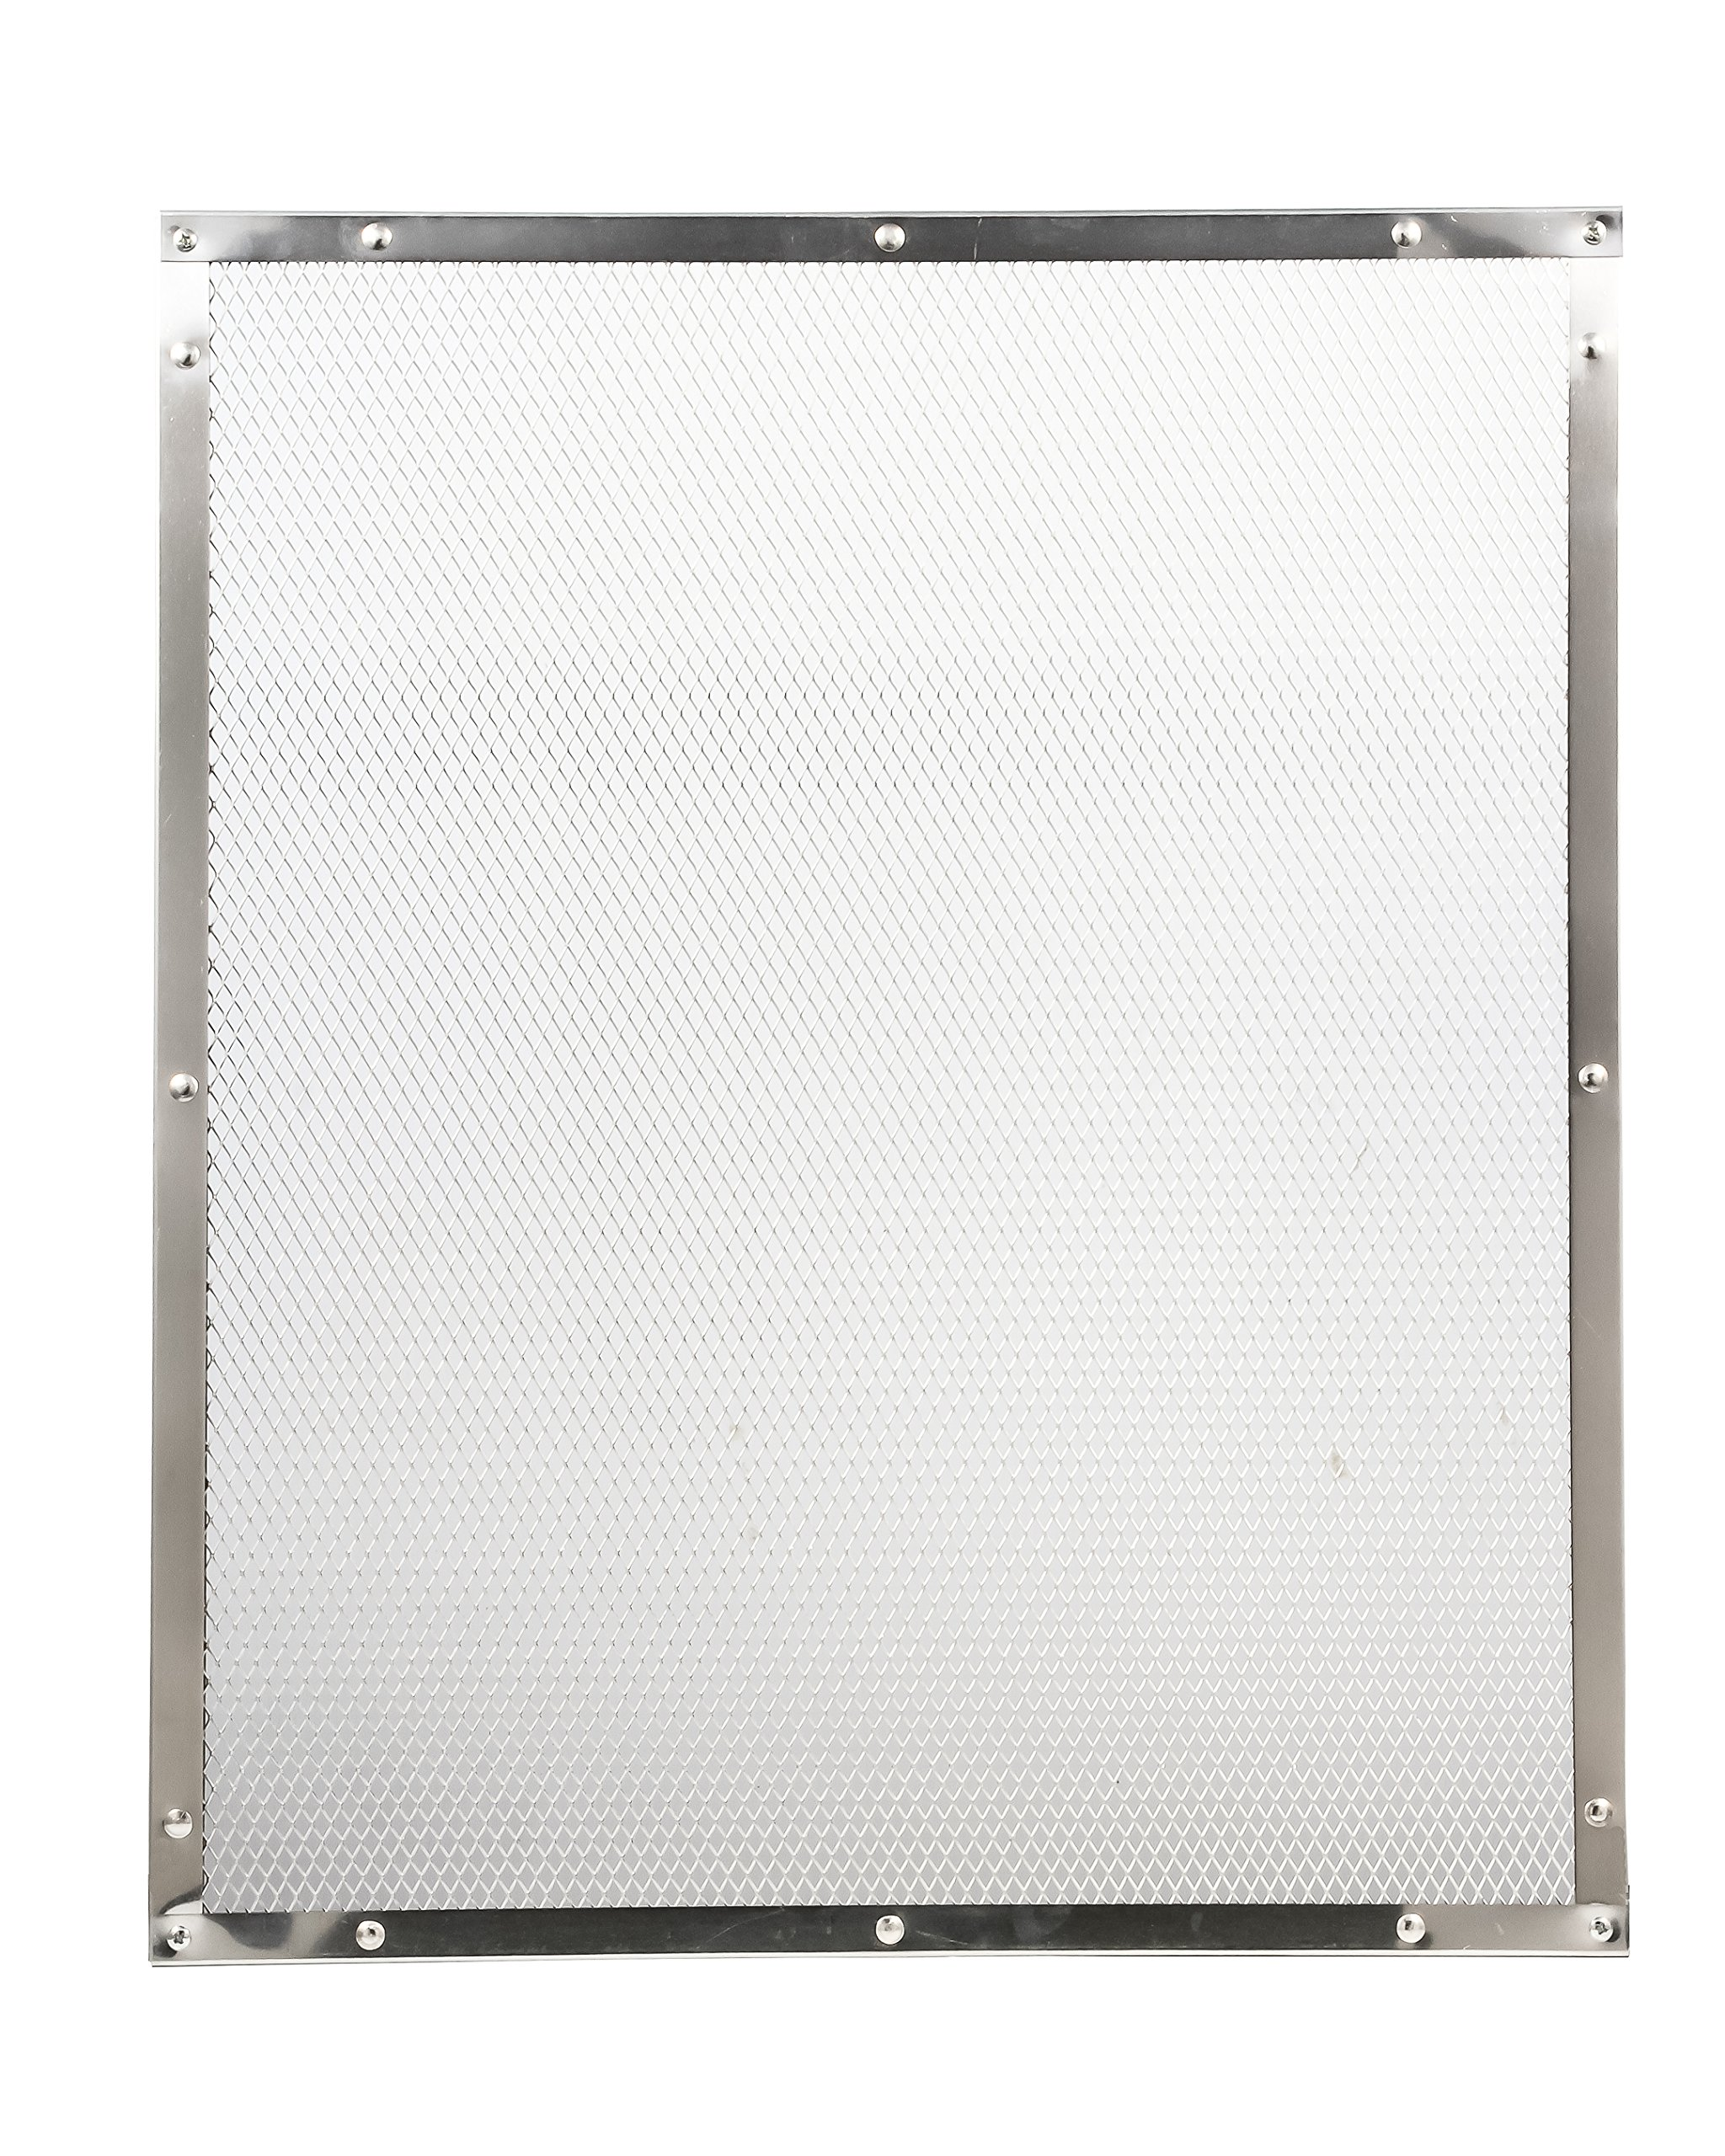 Camco 43981 Aluminum Screen Door Standard Mesh Grille - Protects Your RV's Screen Door, Anodized Aluminum Will Not Corrode by Camco (Image #2)